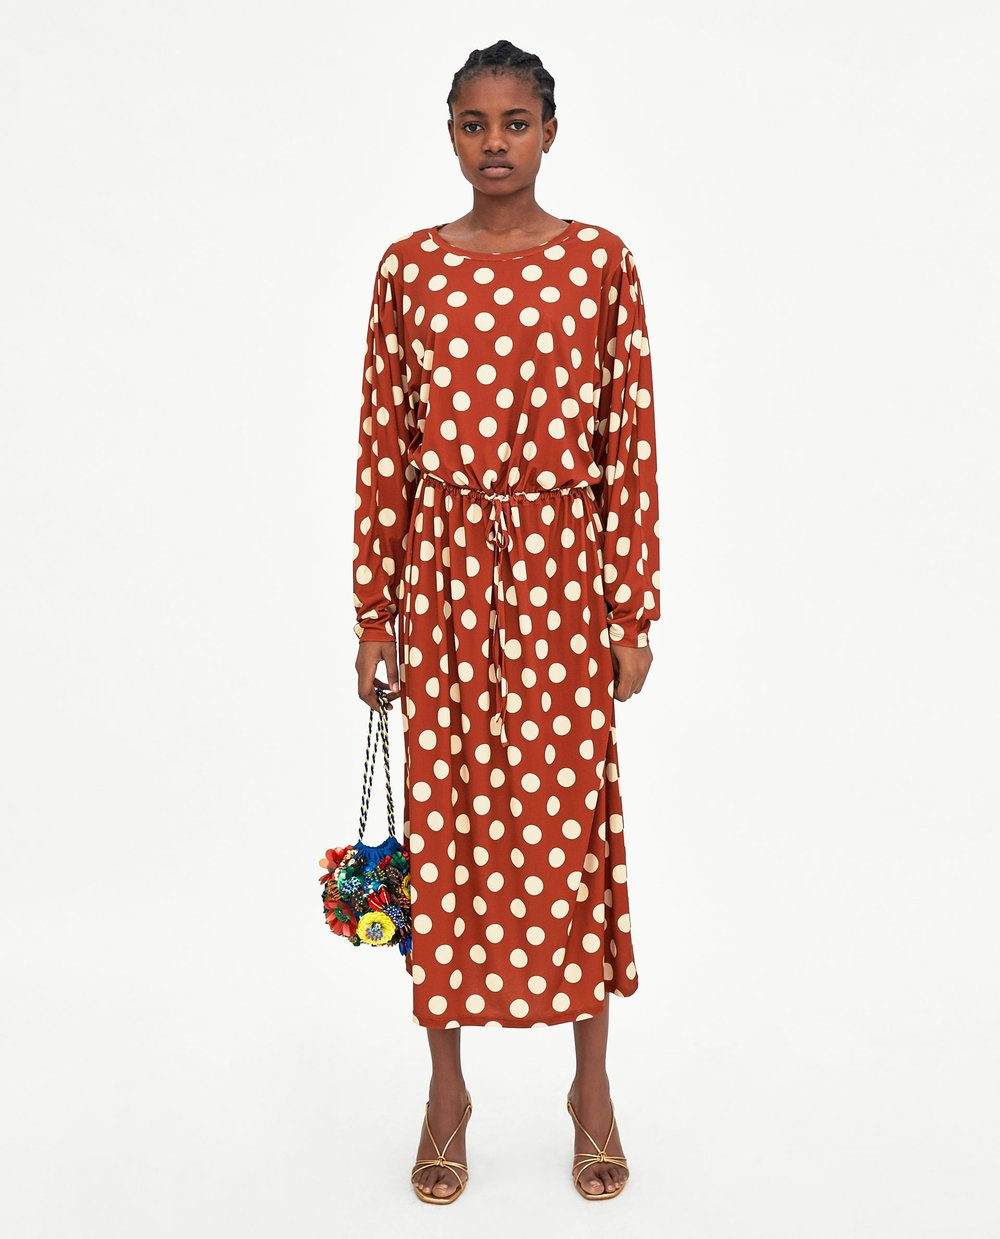 - POLKA DOT STRETCH DRESS / Zara $45.90